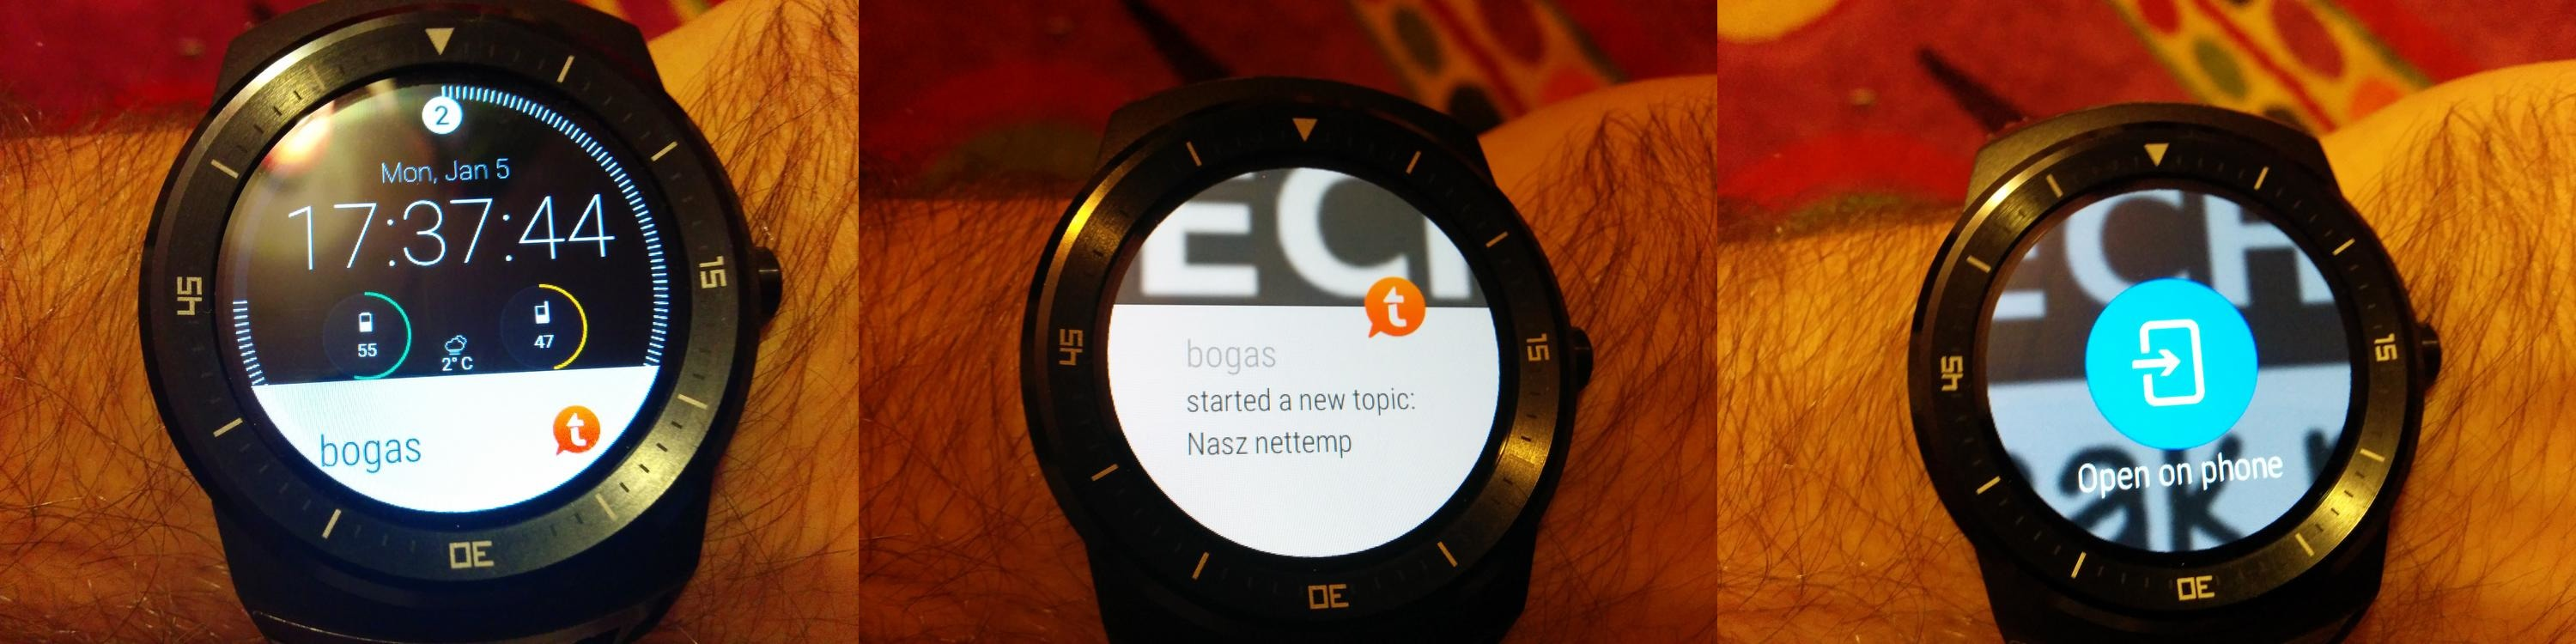 LG_G_watch_R_tapatalk_tapatalk